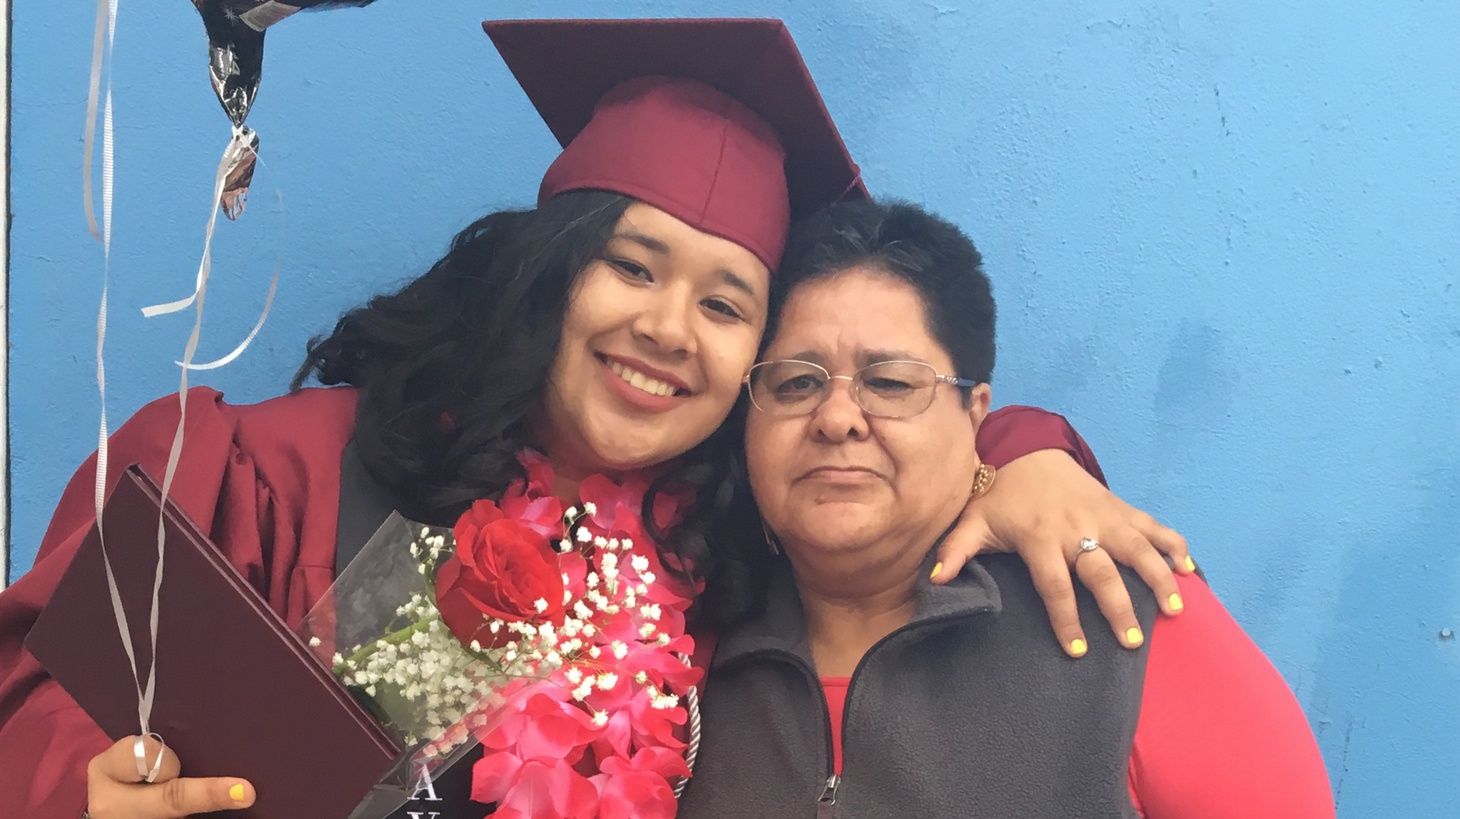 Lupe and her mom, Amalia. Her mom wasn't able to attend graduation because of her immigration status.